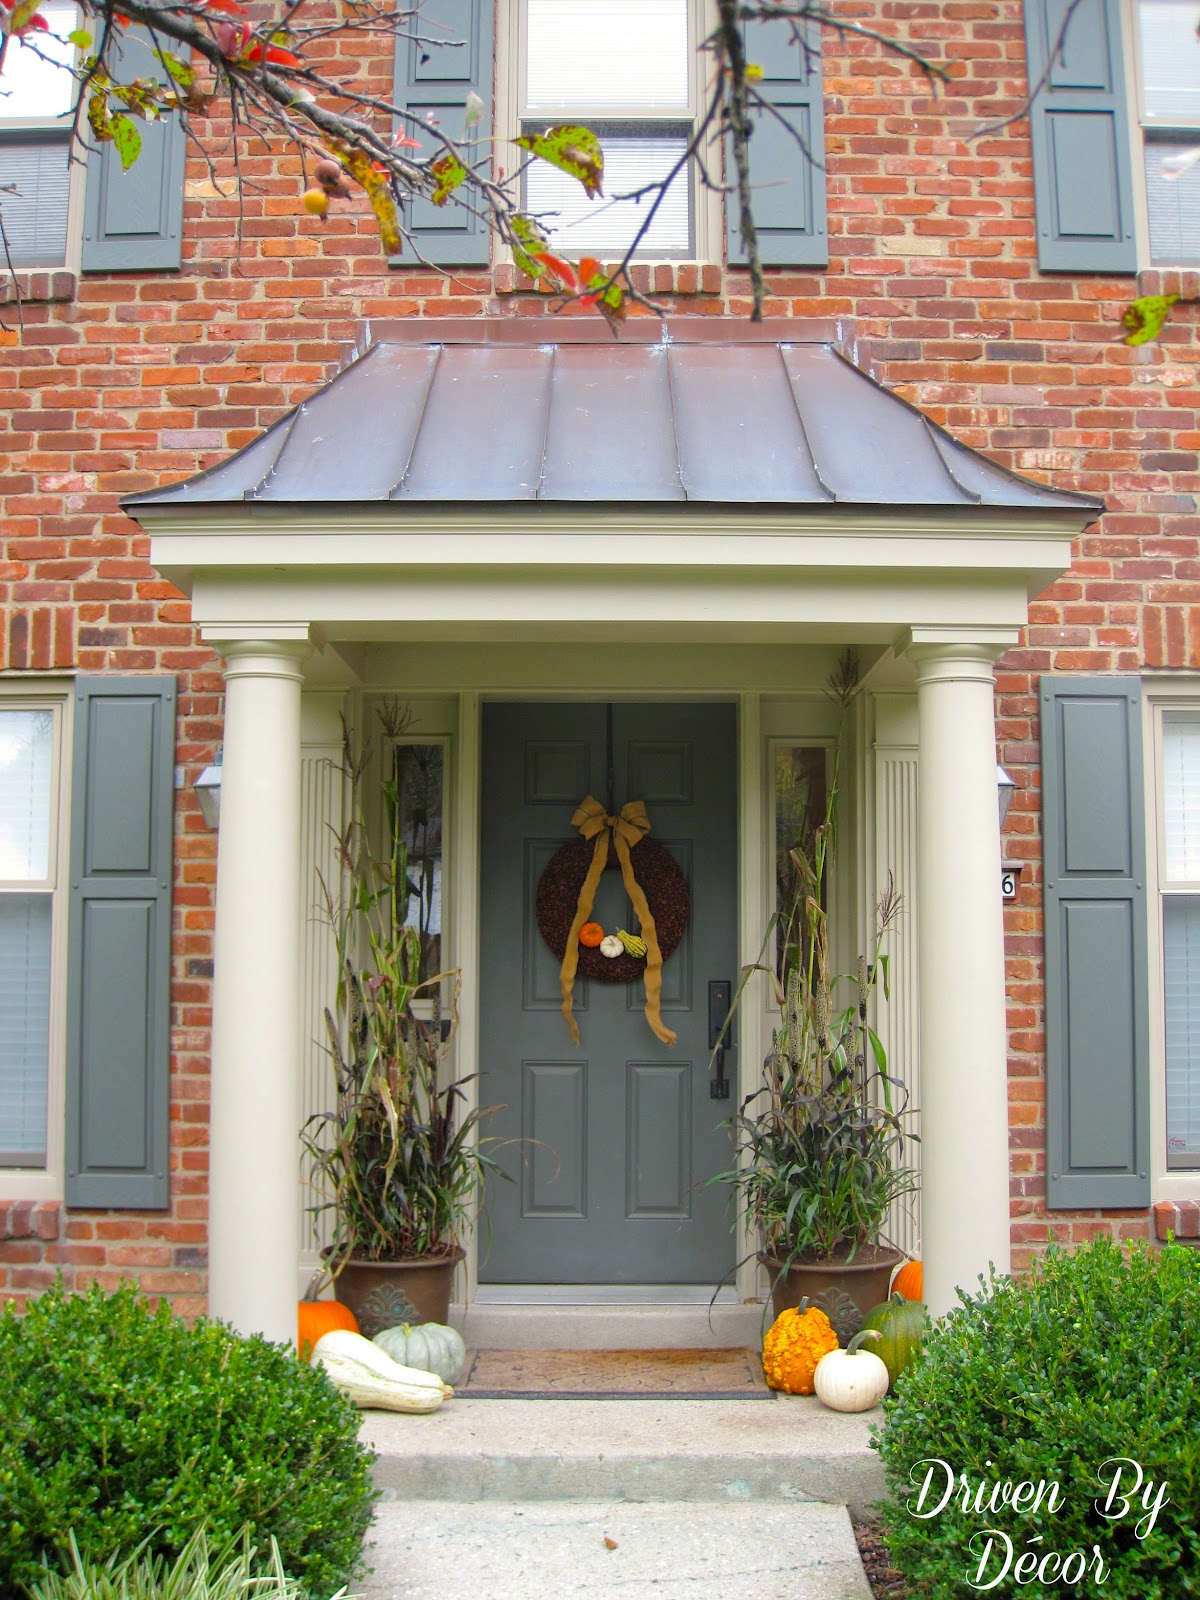 Decorating My Front Porch for Fall | Driven by Decor